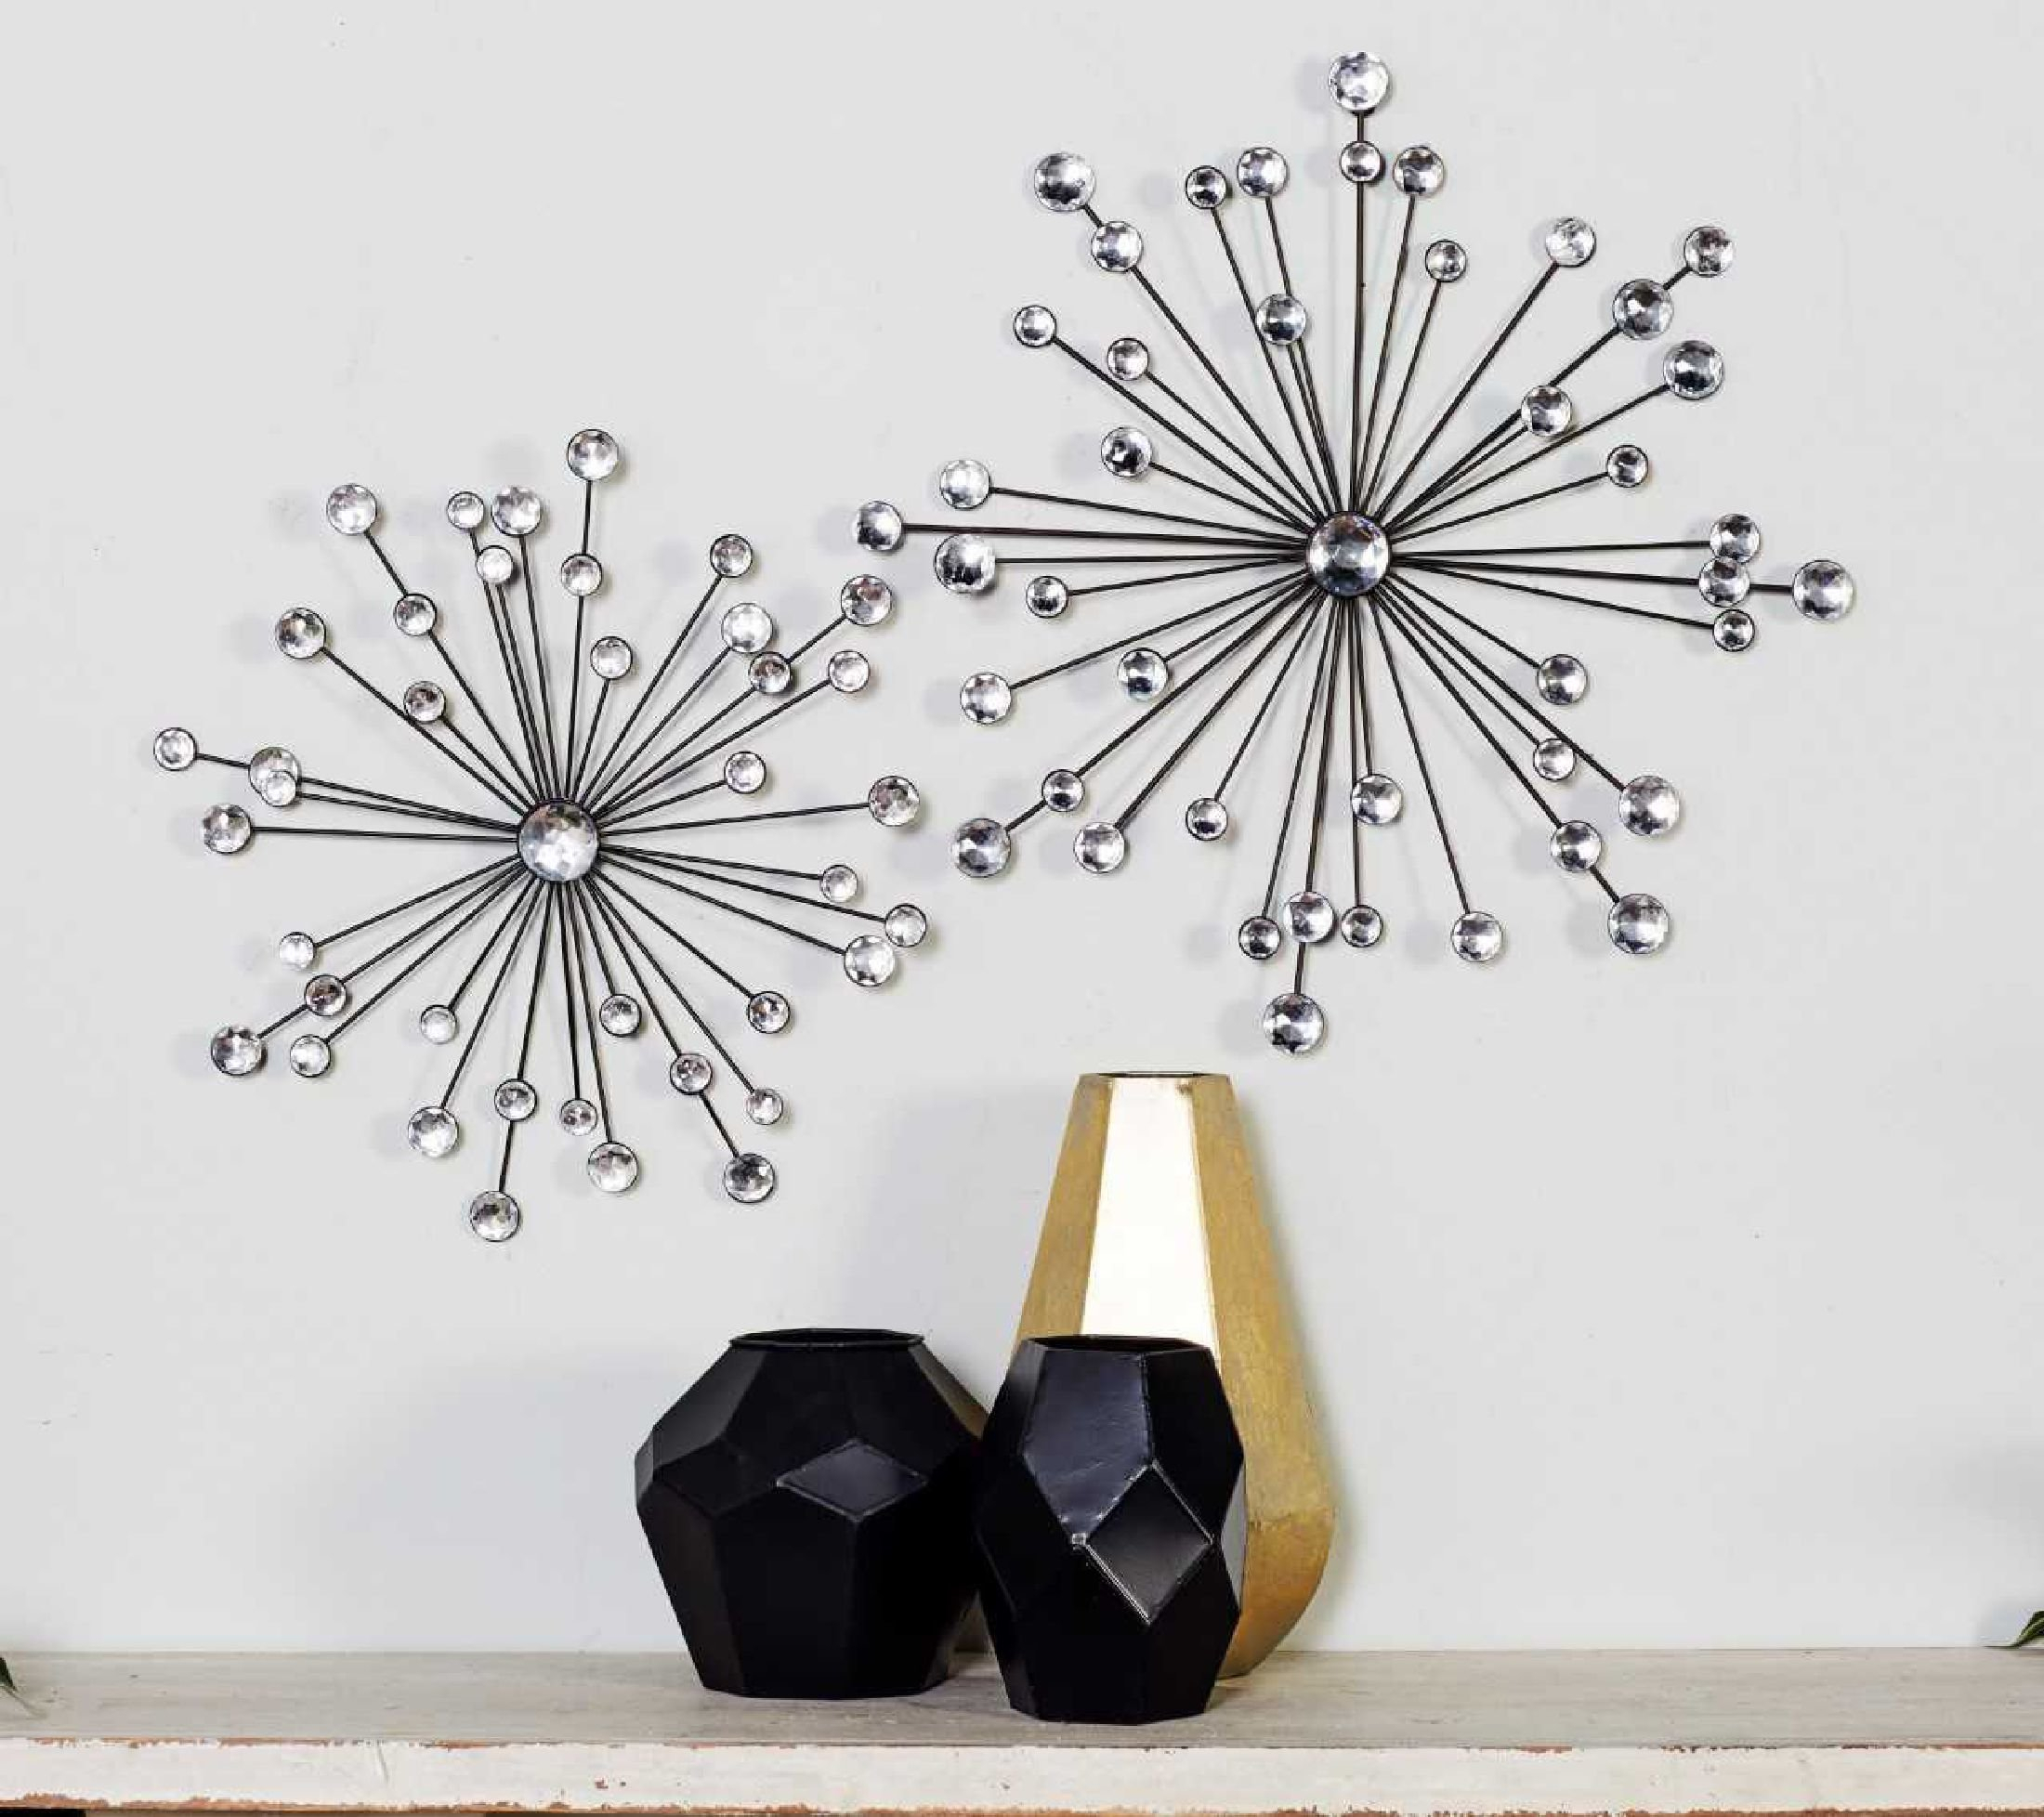 Wayfair Intended For Well Liked 3 Piece Wall Decor Sets By Wrought Studio (View 11 of 20)